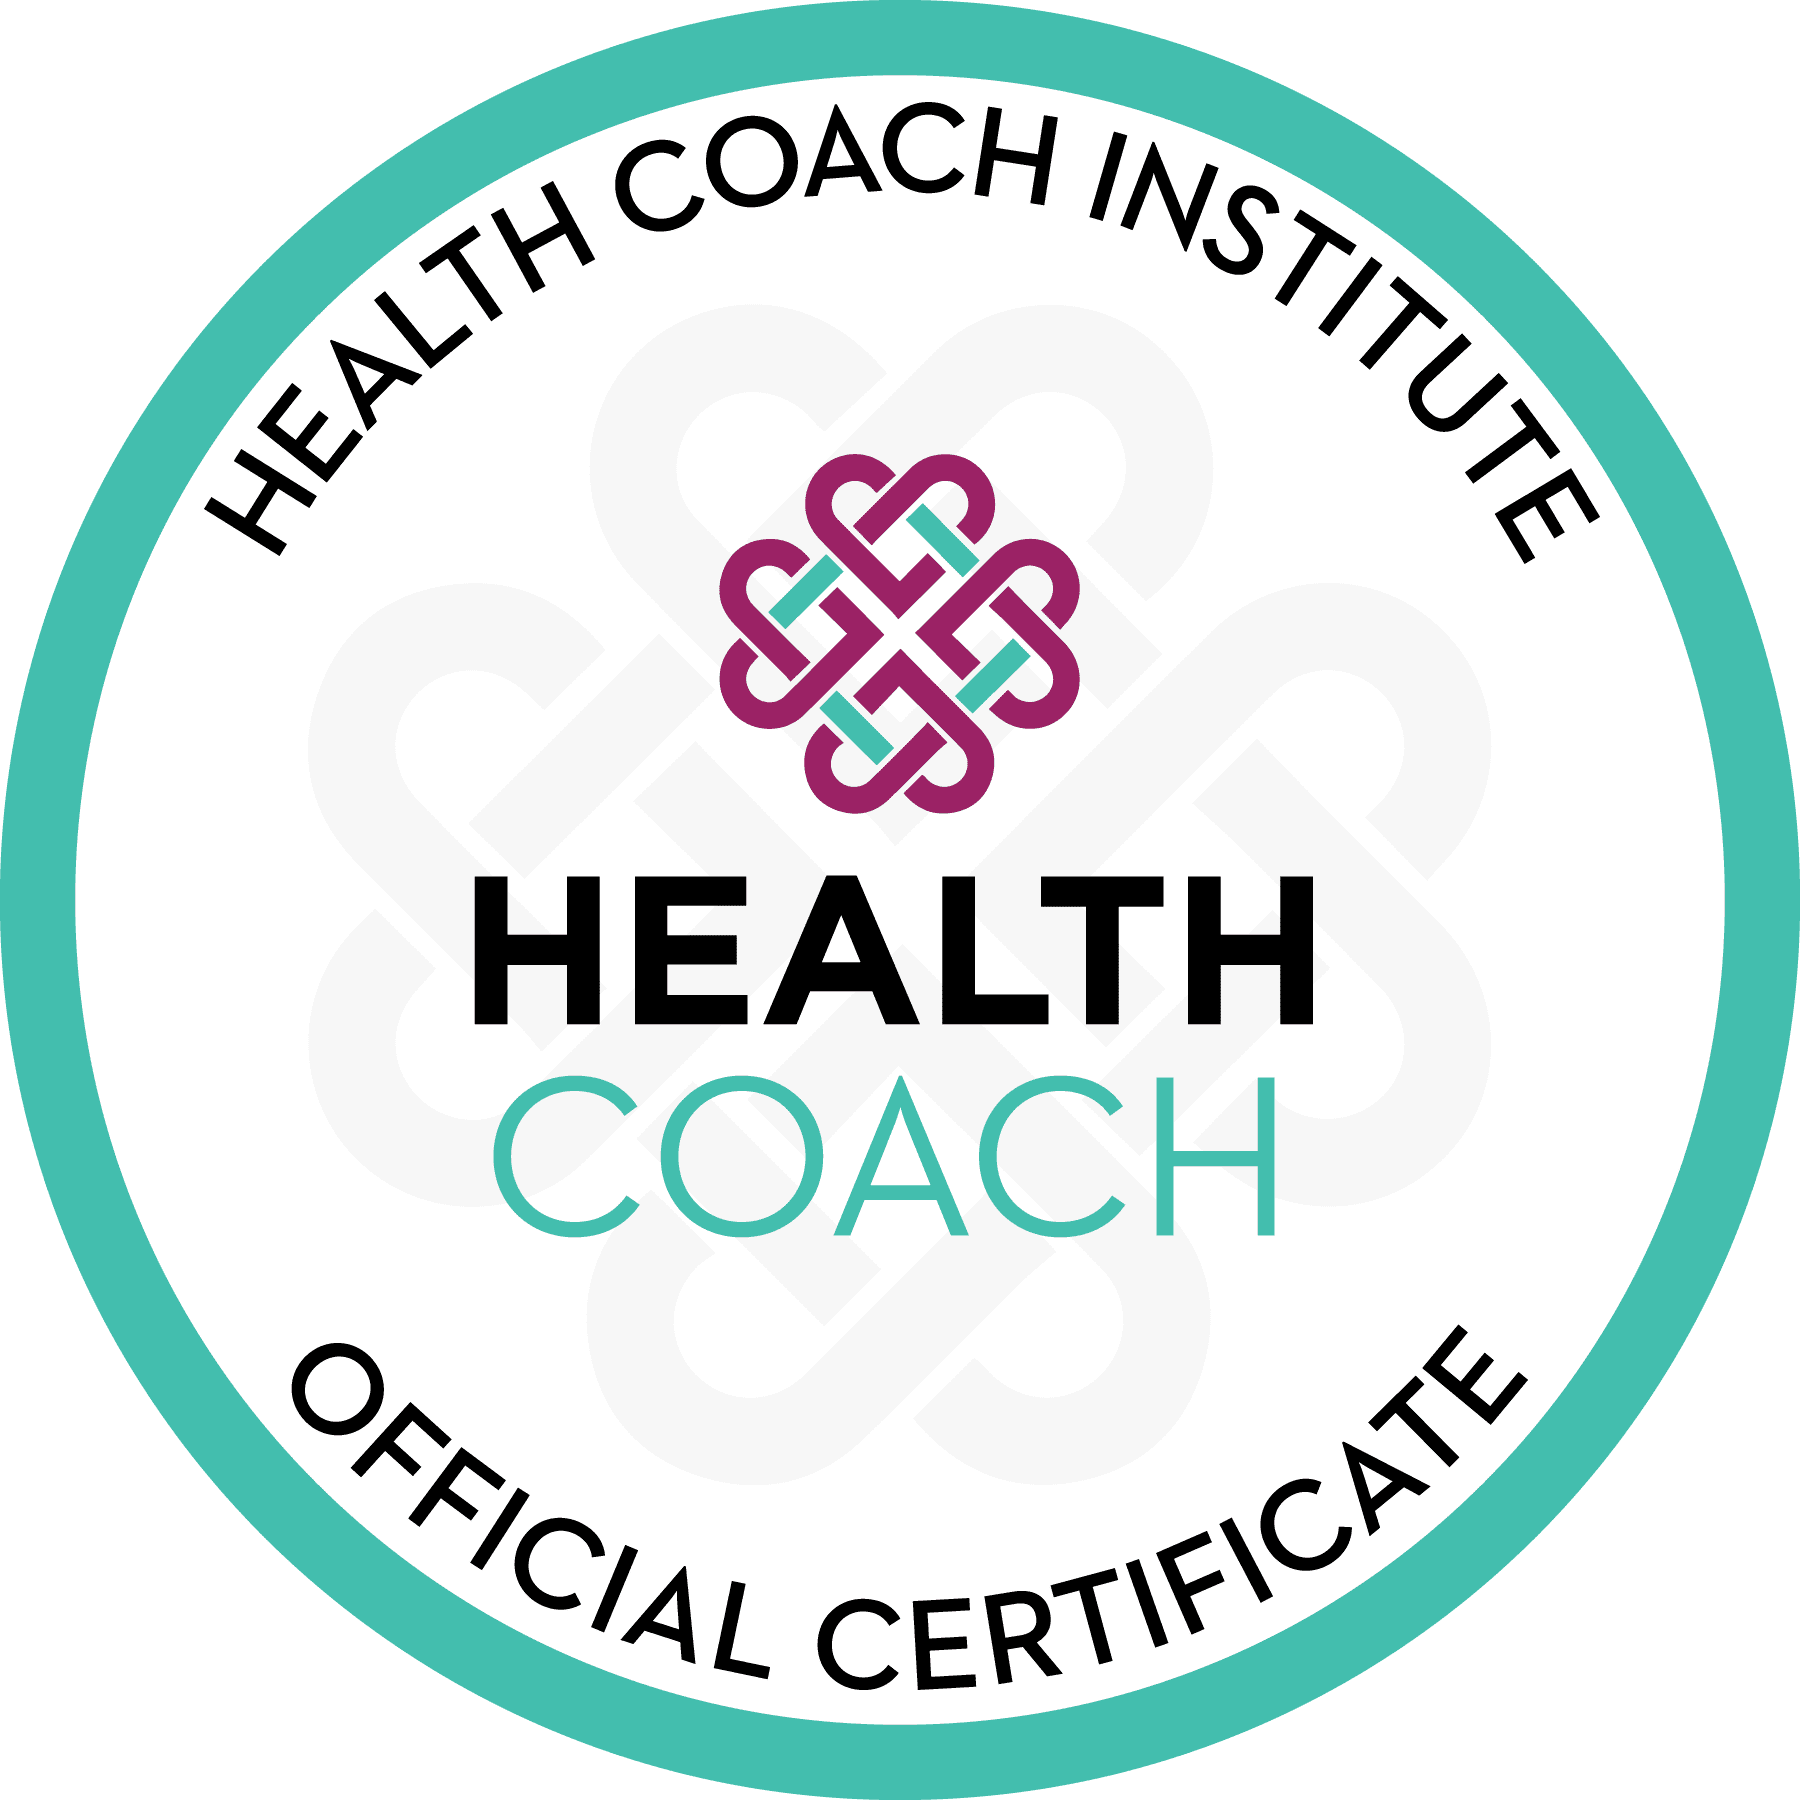 bhc-certification.png